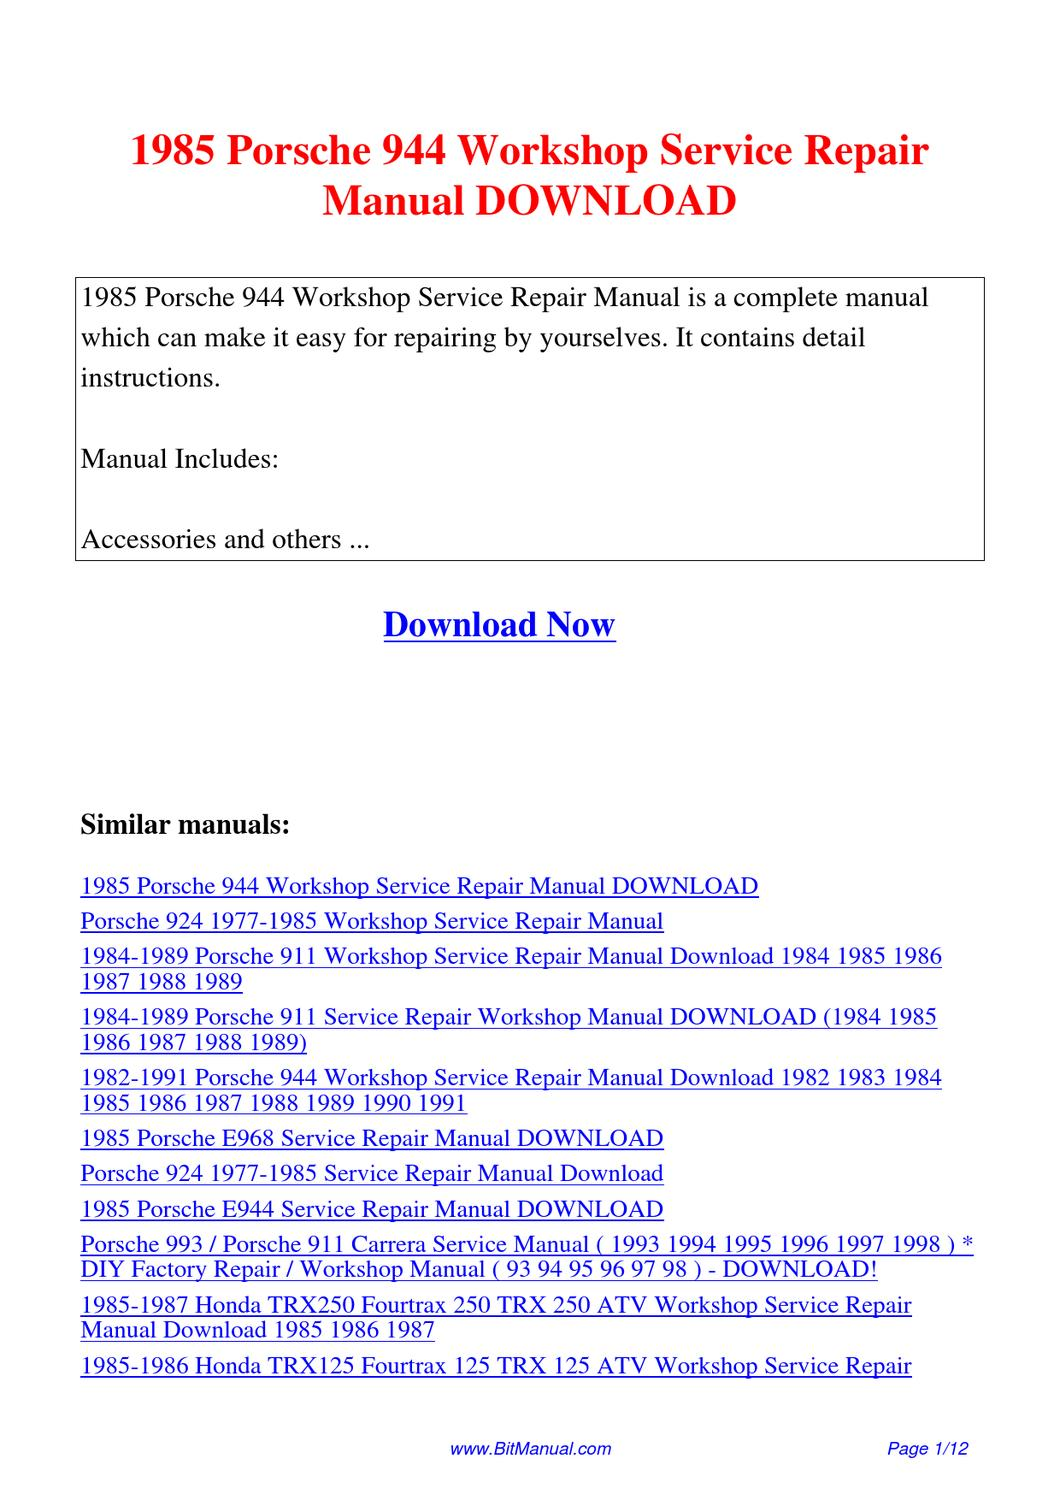 1985 Porsche 944 Workshop Service Repair Manual By Lisa Fu